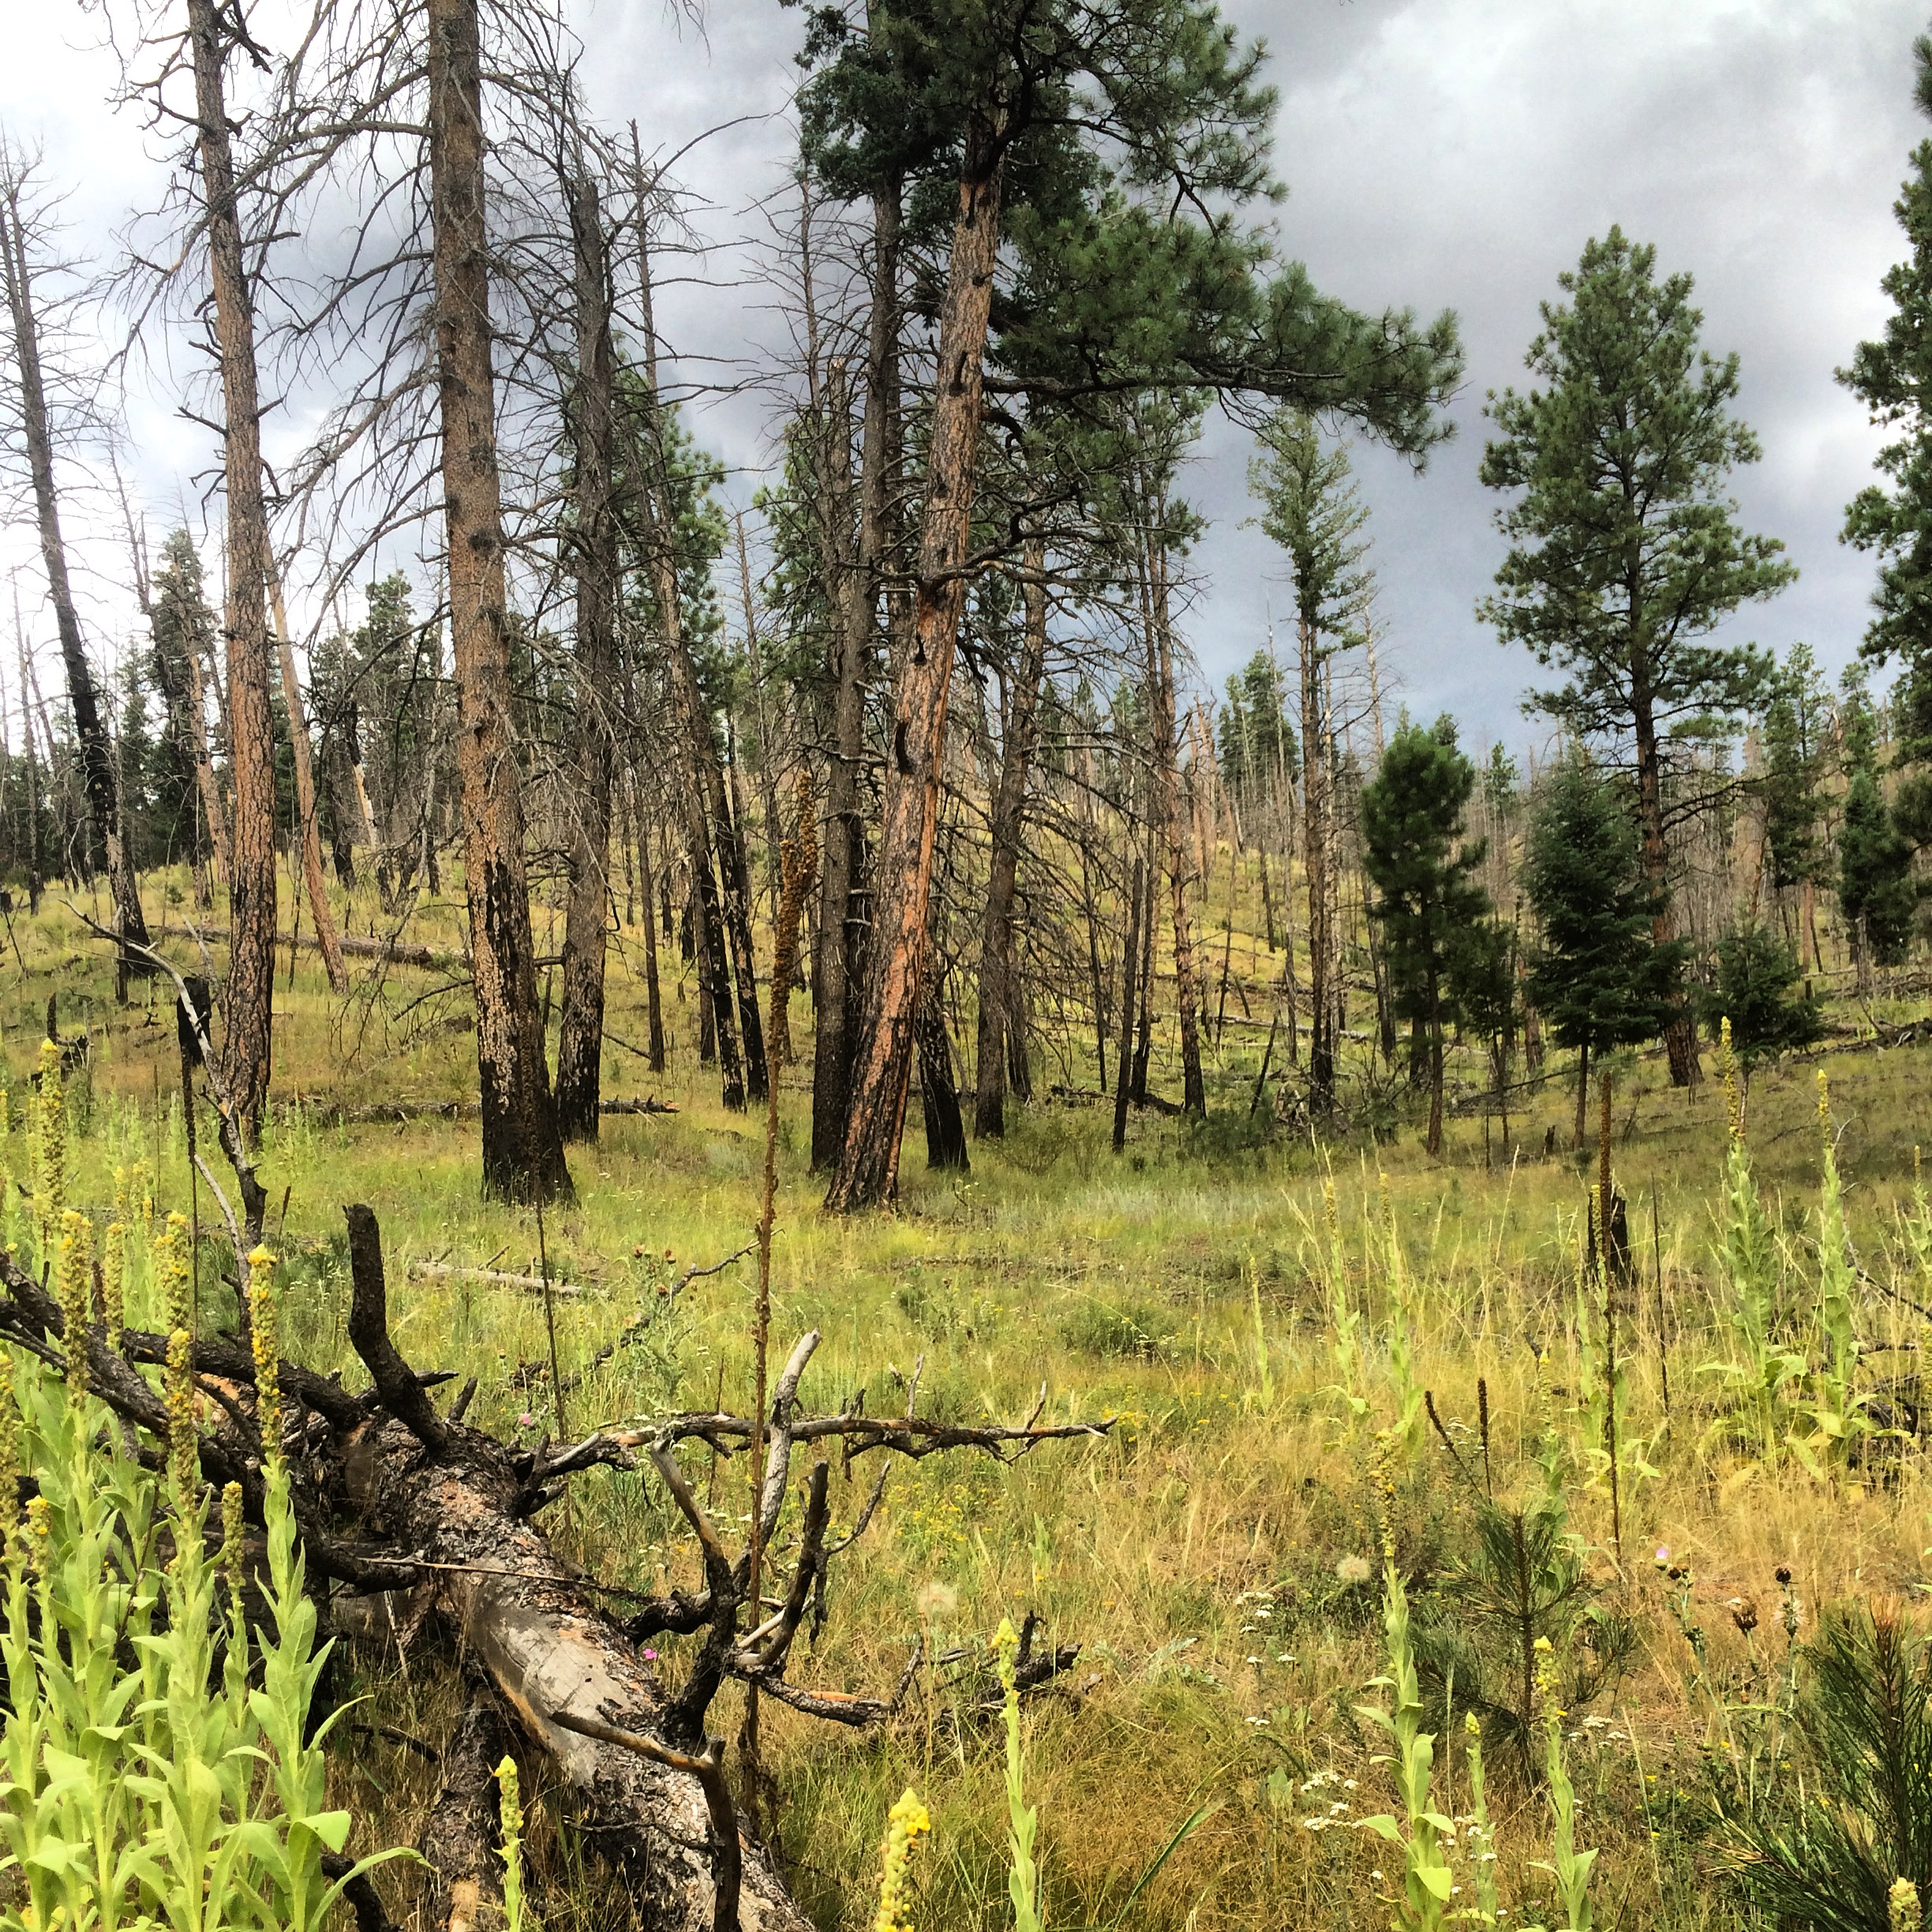 A recovering burnt forest